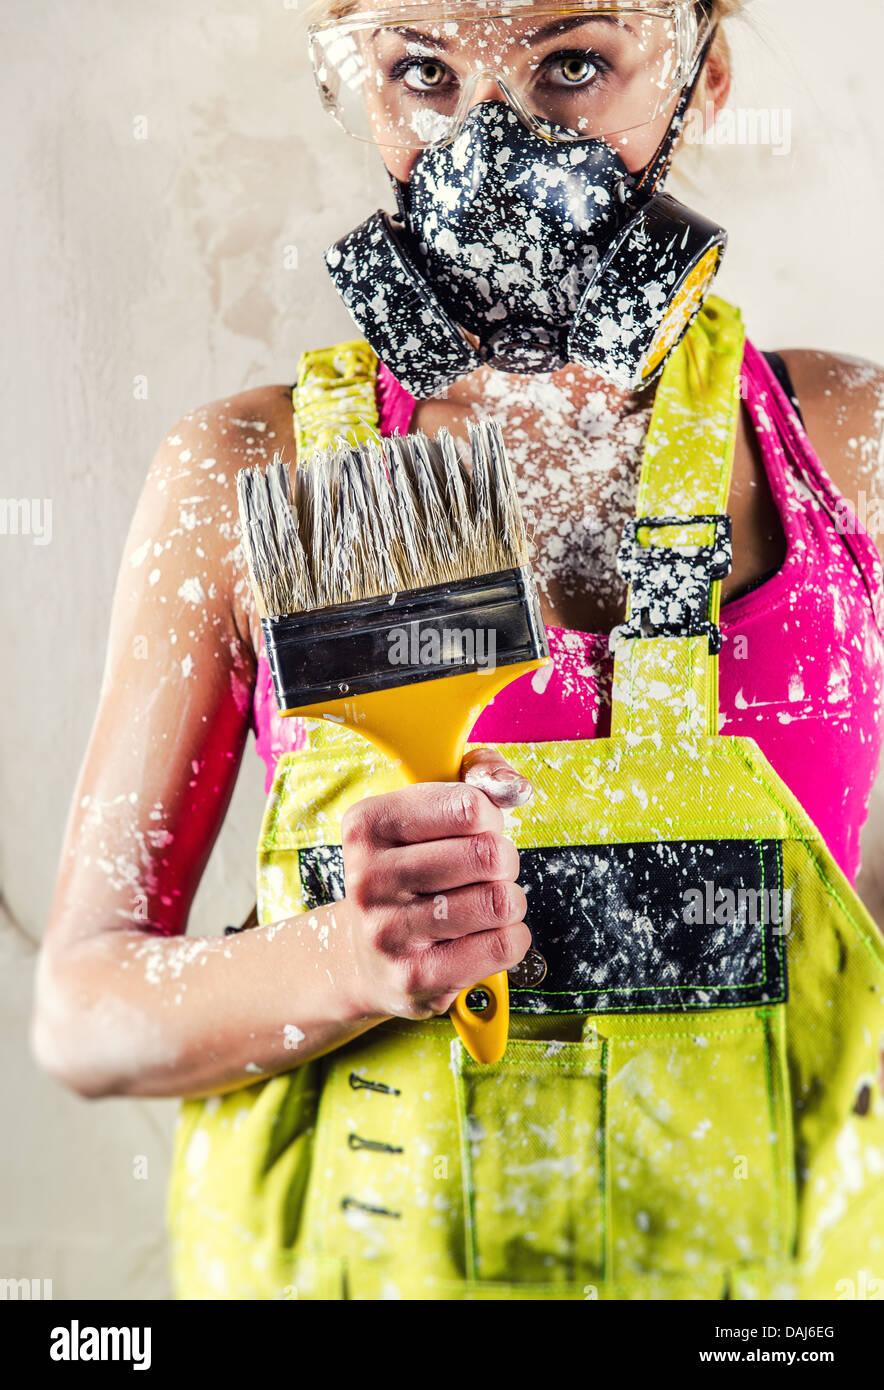 Female in respirator - Stock Image